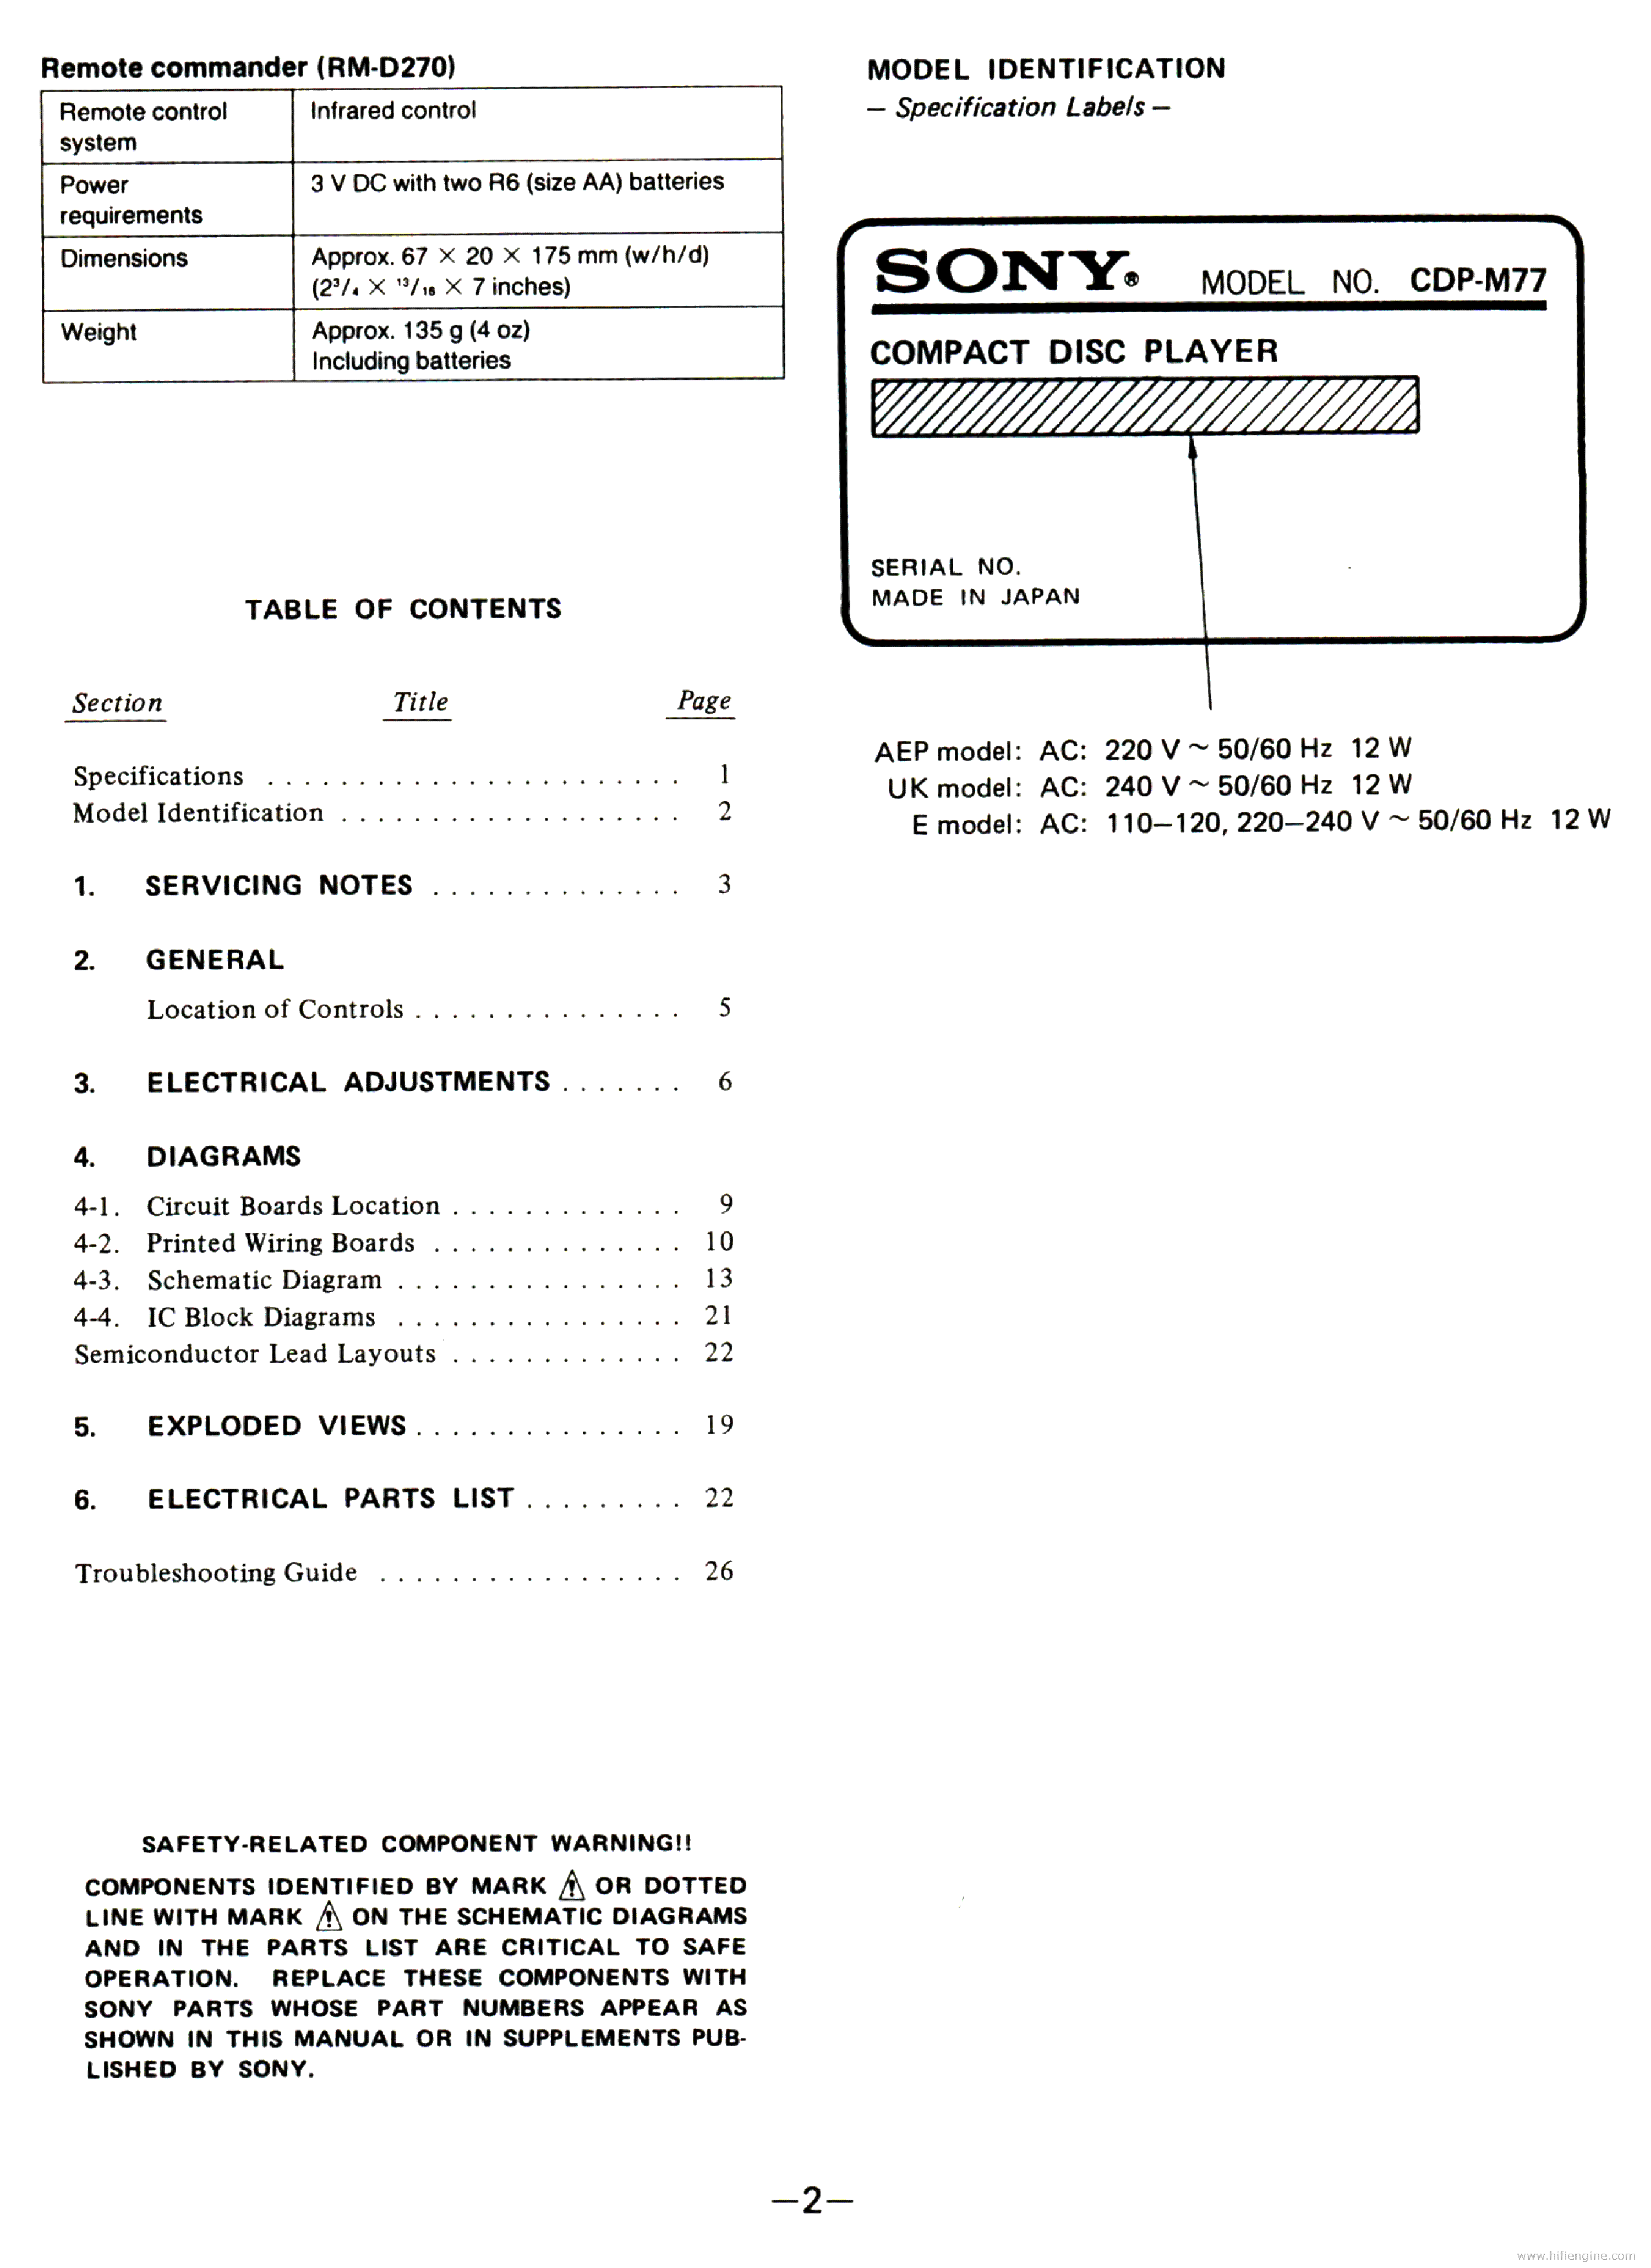 SONY CDP-M77 SM FULL service manual (2nd page)